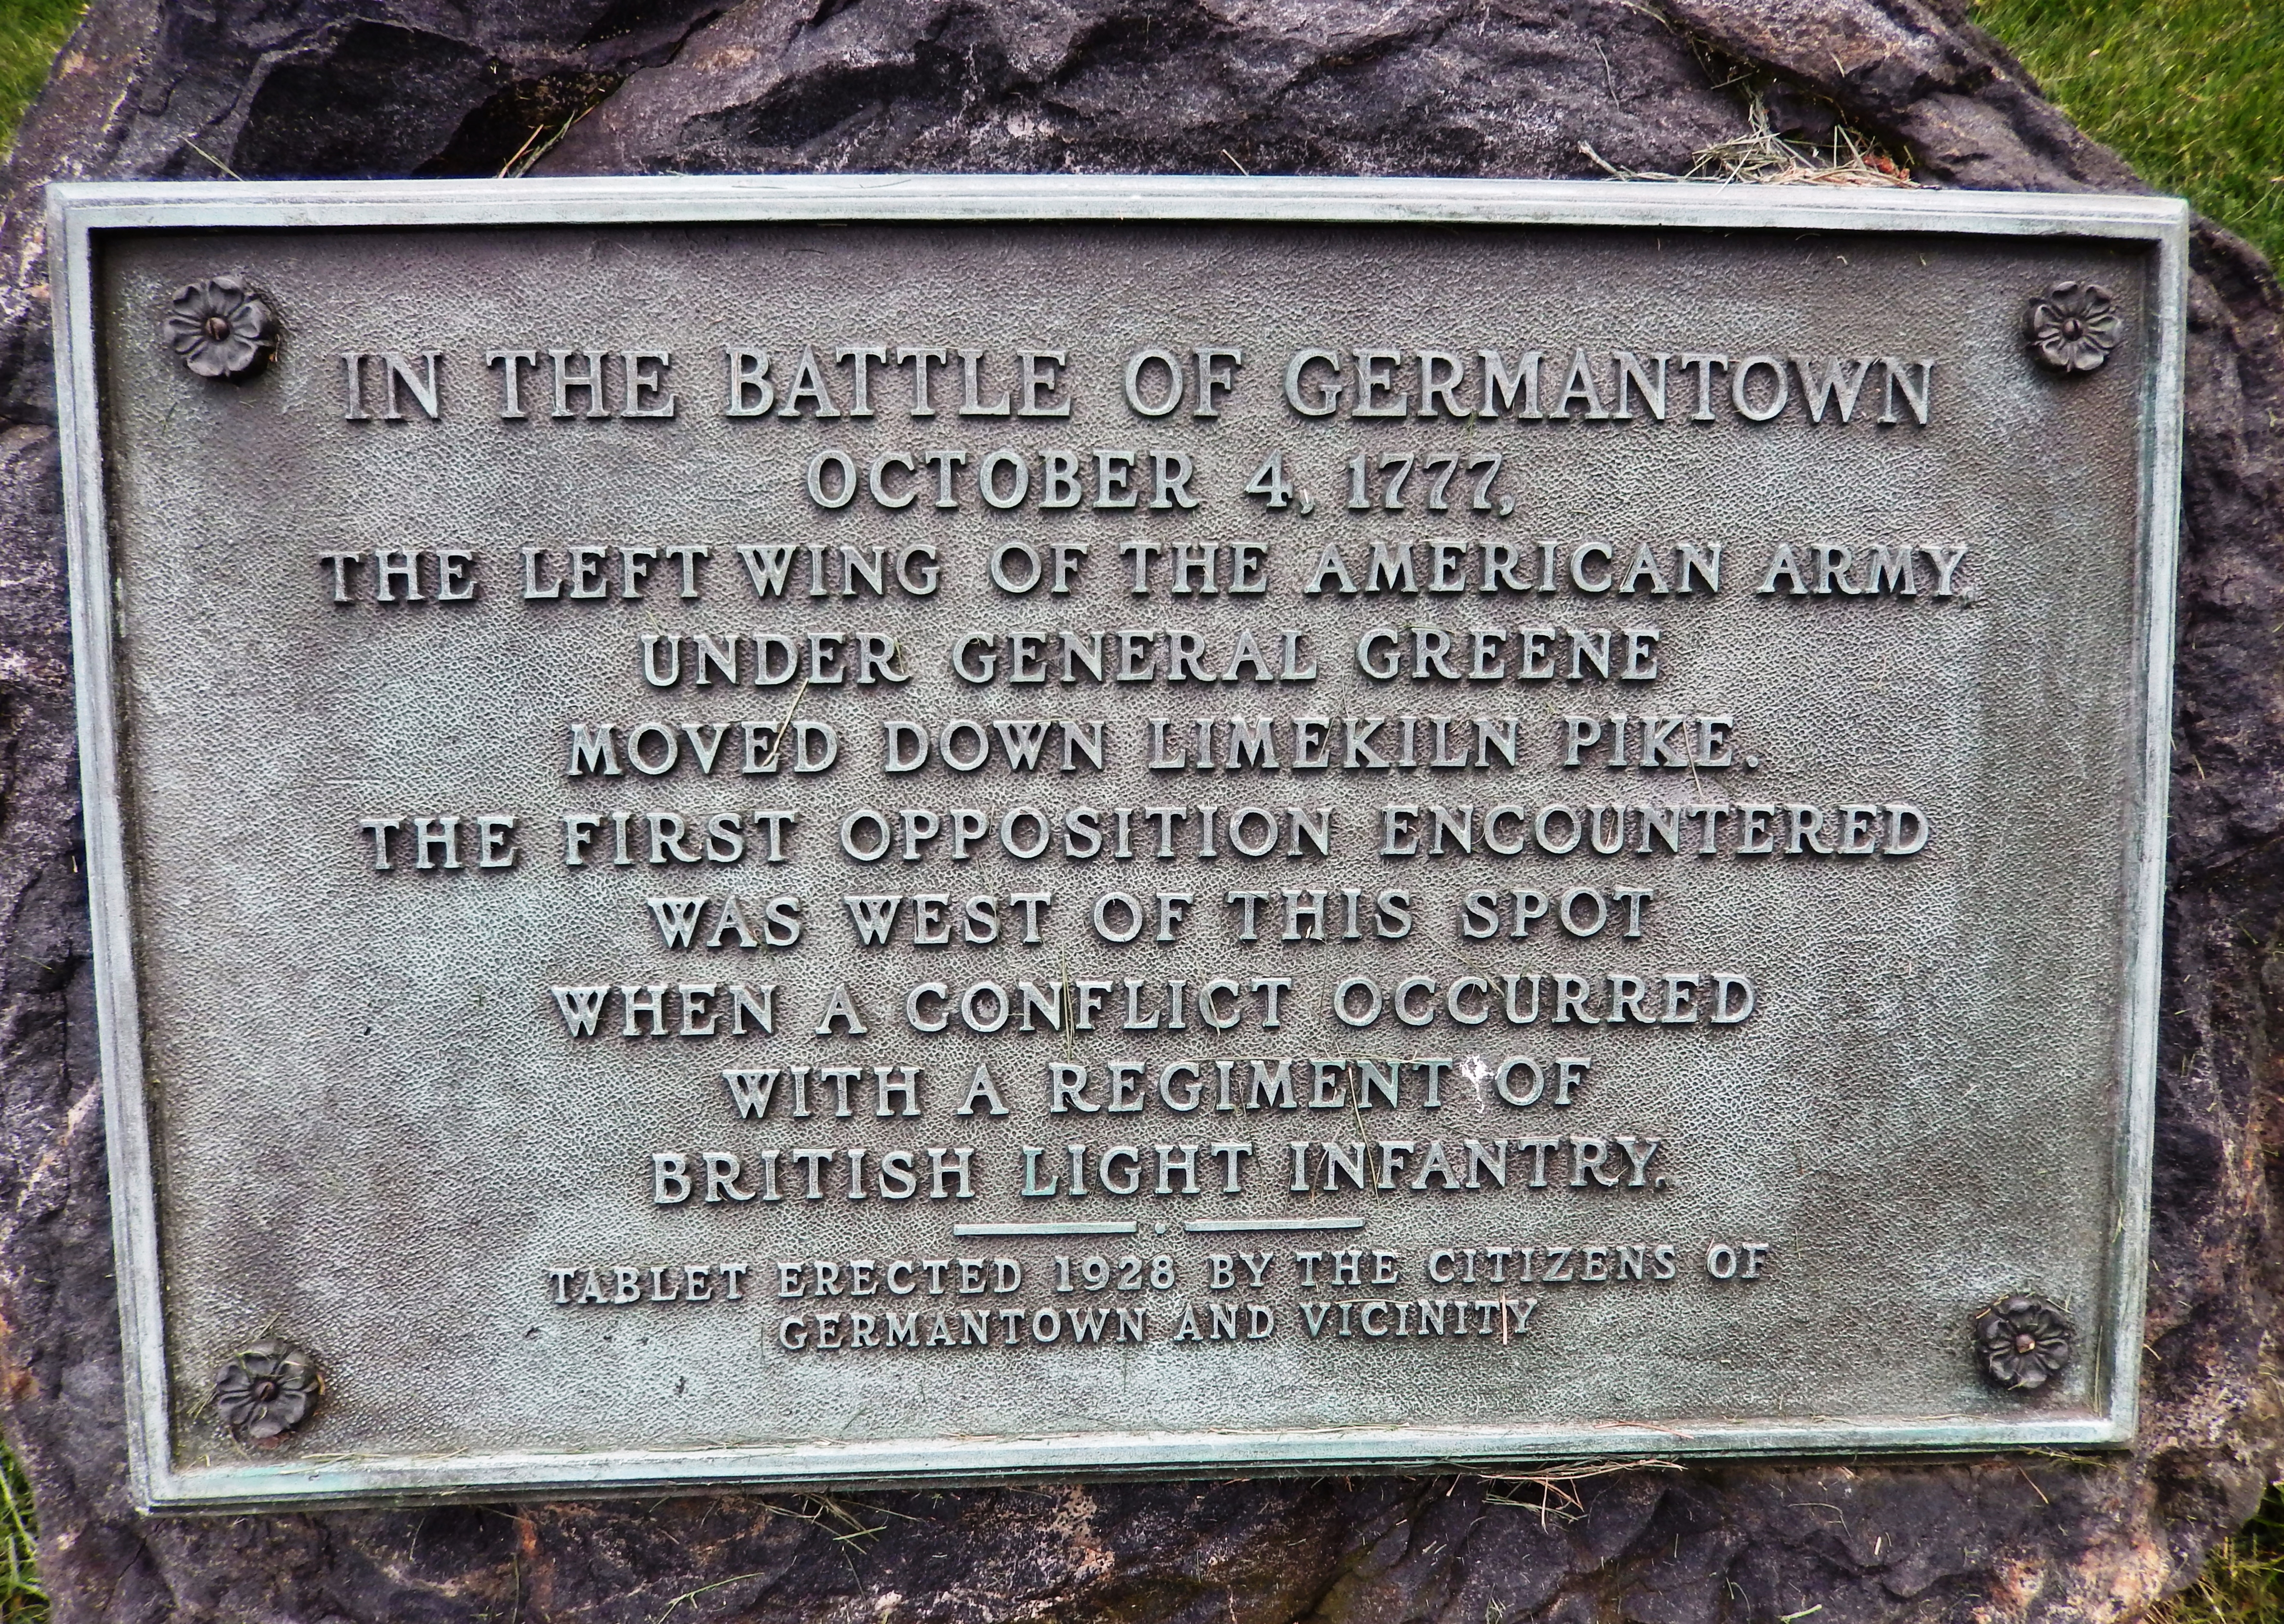 The Battle of Germantown Marker